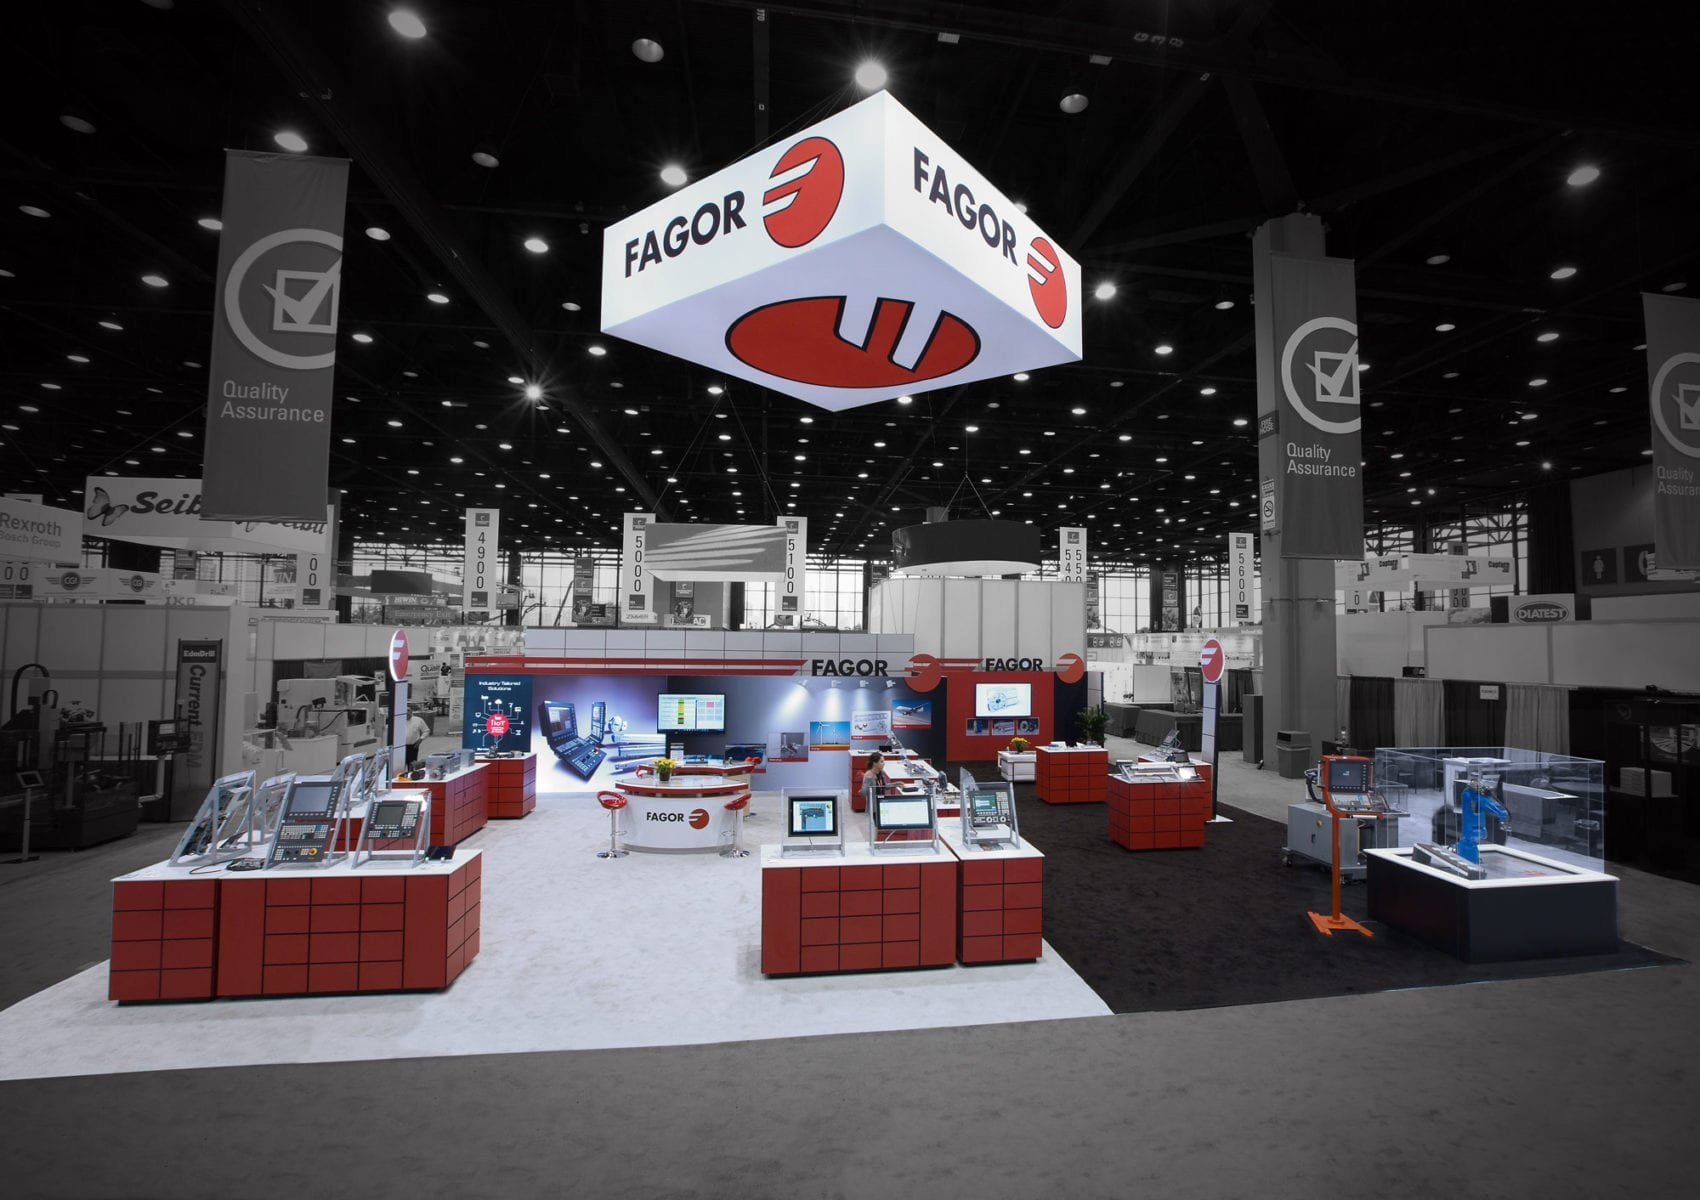 Trade Show Booth Rental: Pros and Cons